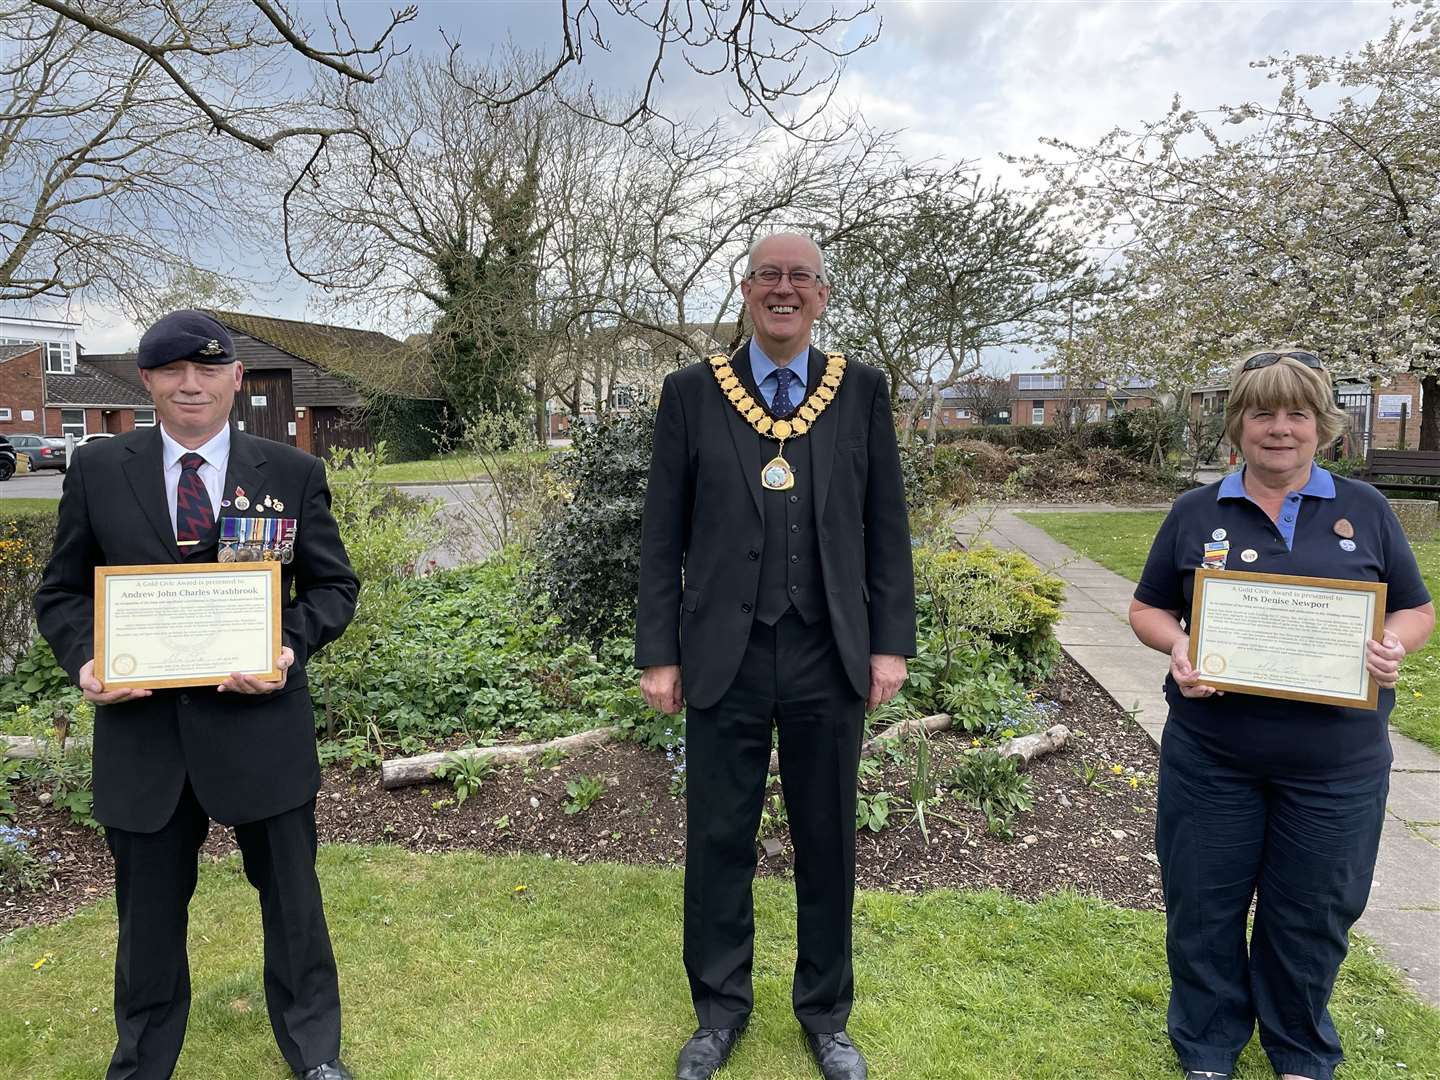 Volunteer parade marshal Andrew Washbrook and Denise Newport receive their Gold Civic Awards from Thatcham town mayor Mike Cole (46838944)